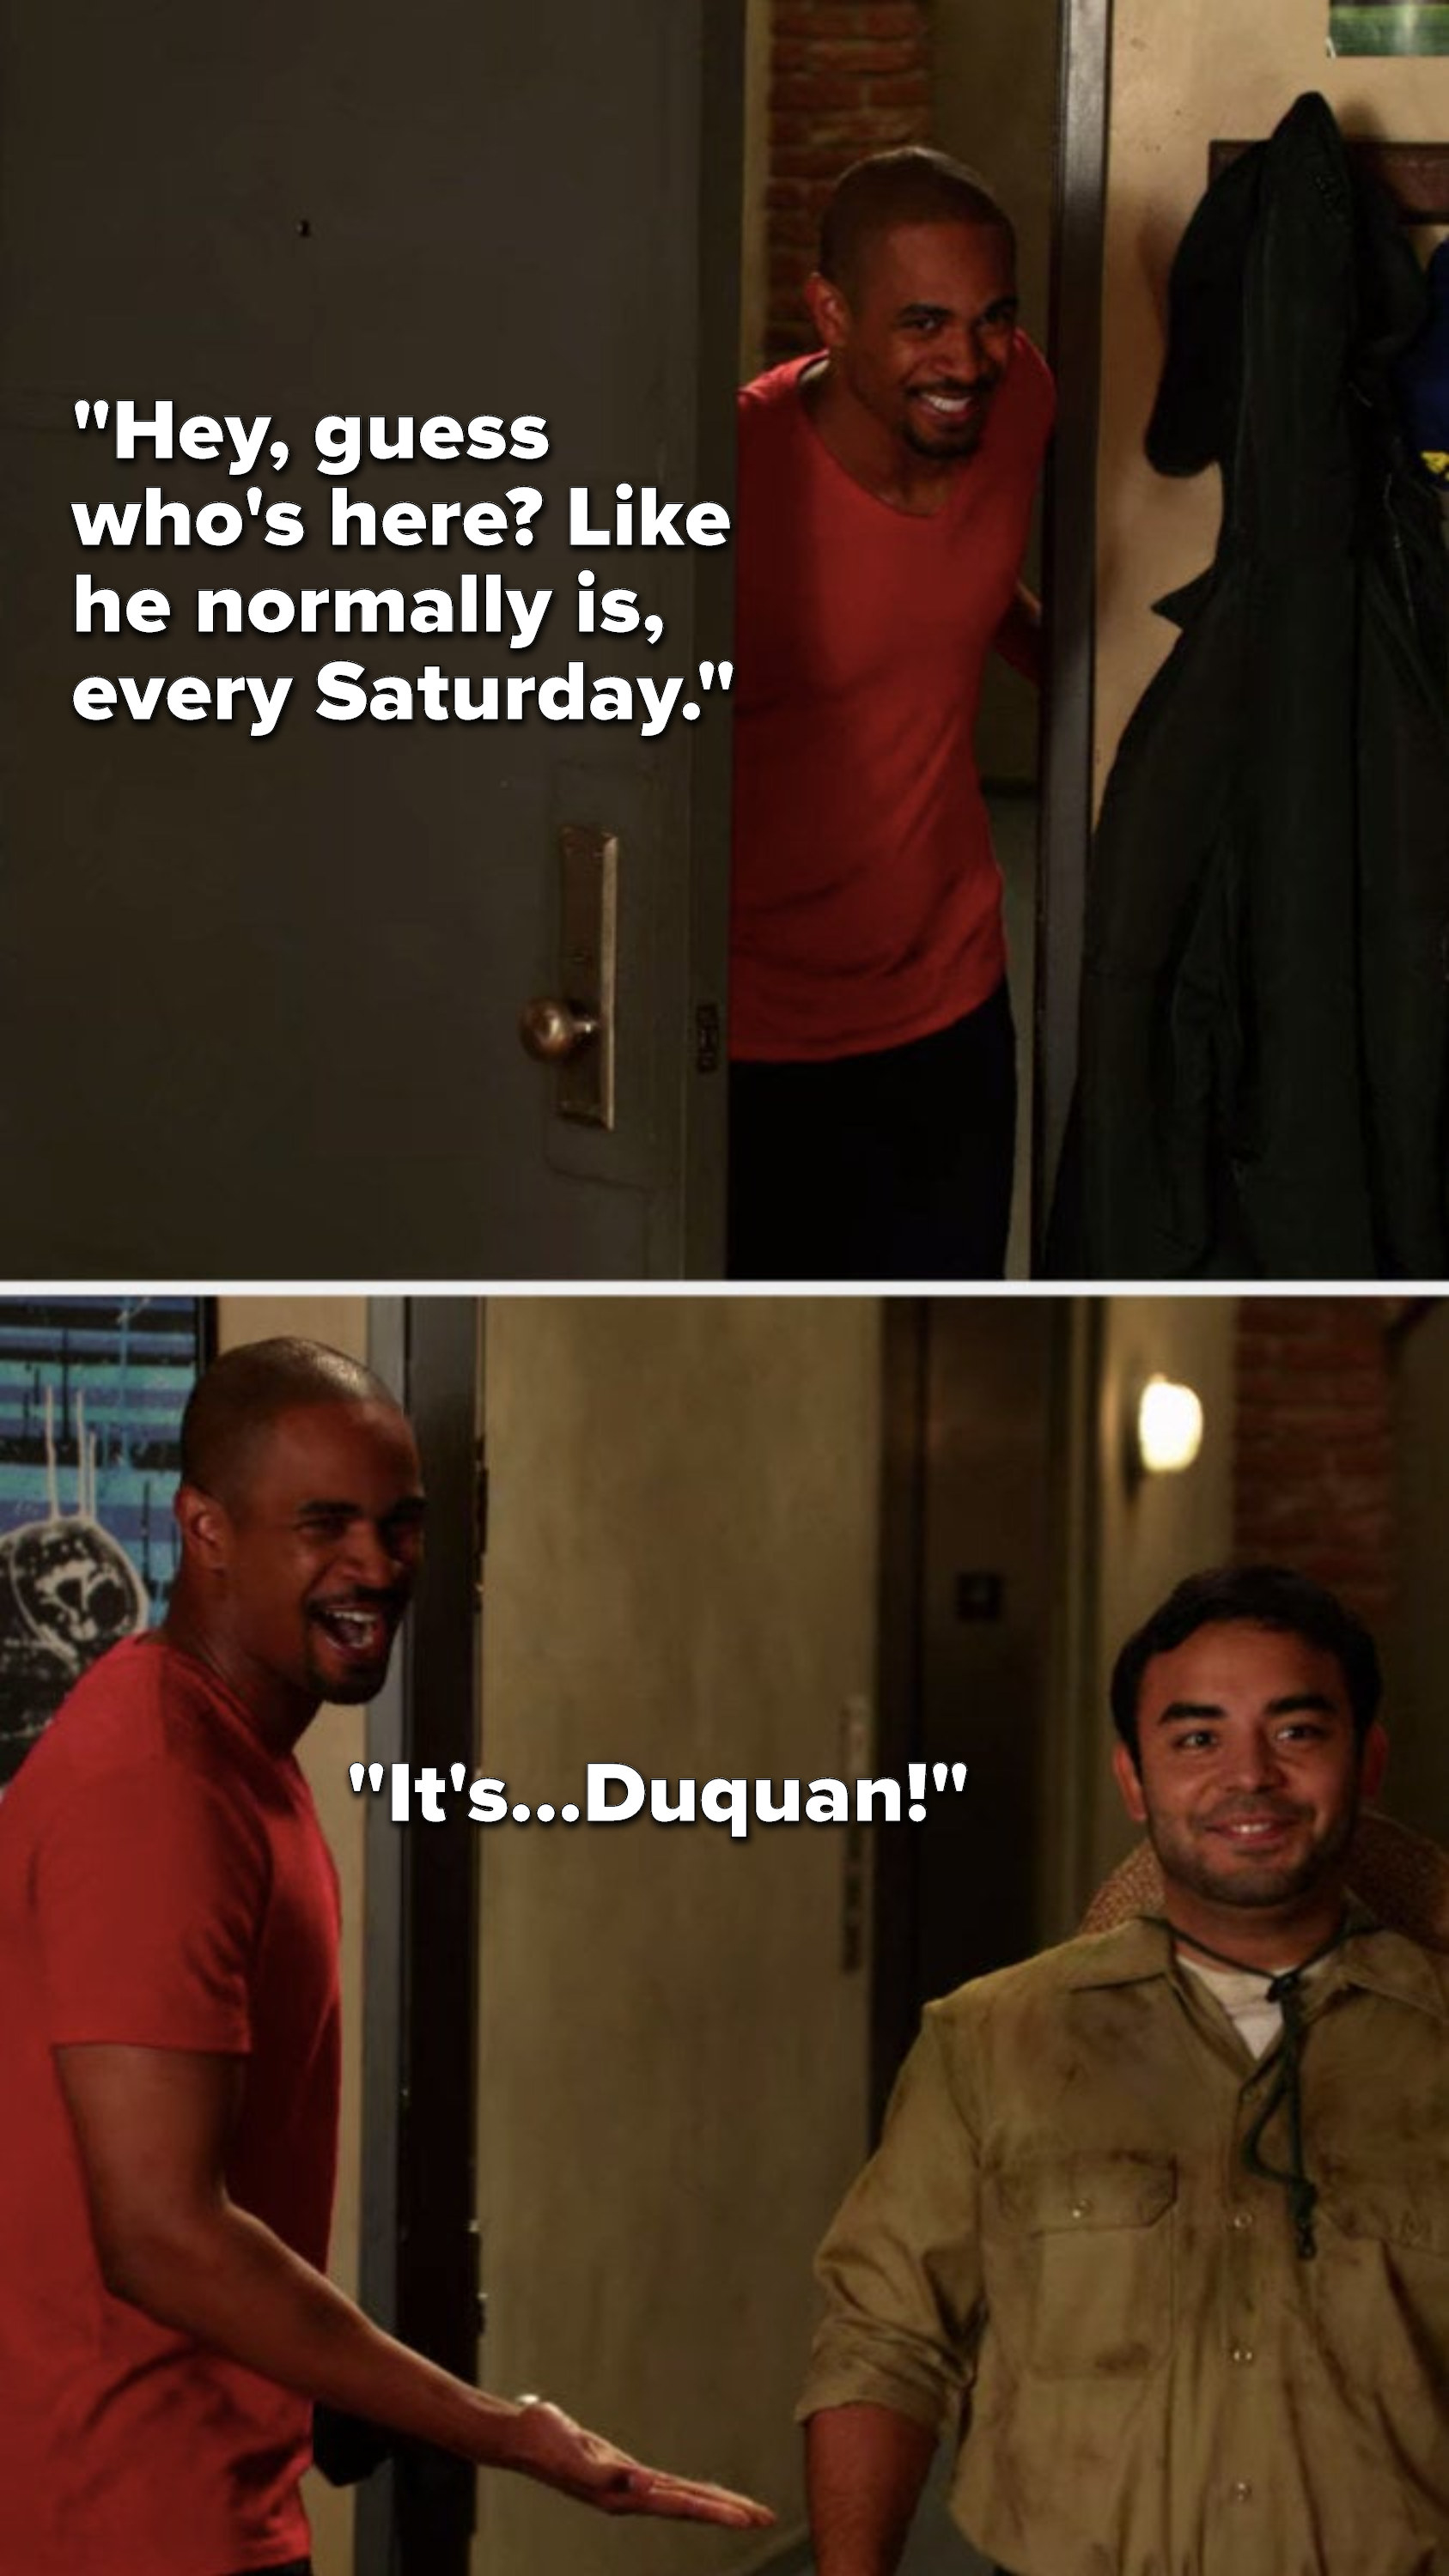 """Coach says, """"Hey, guess who's here? Like he normally is, every Saturday. It's...Duquan!"""" and a man in his thirties walks in"""